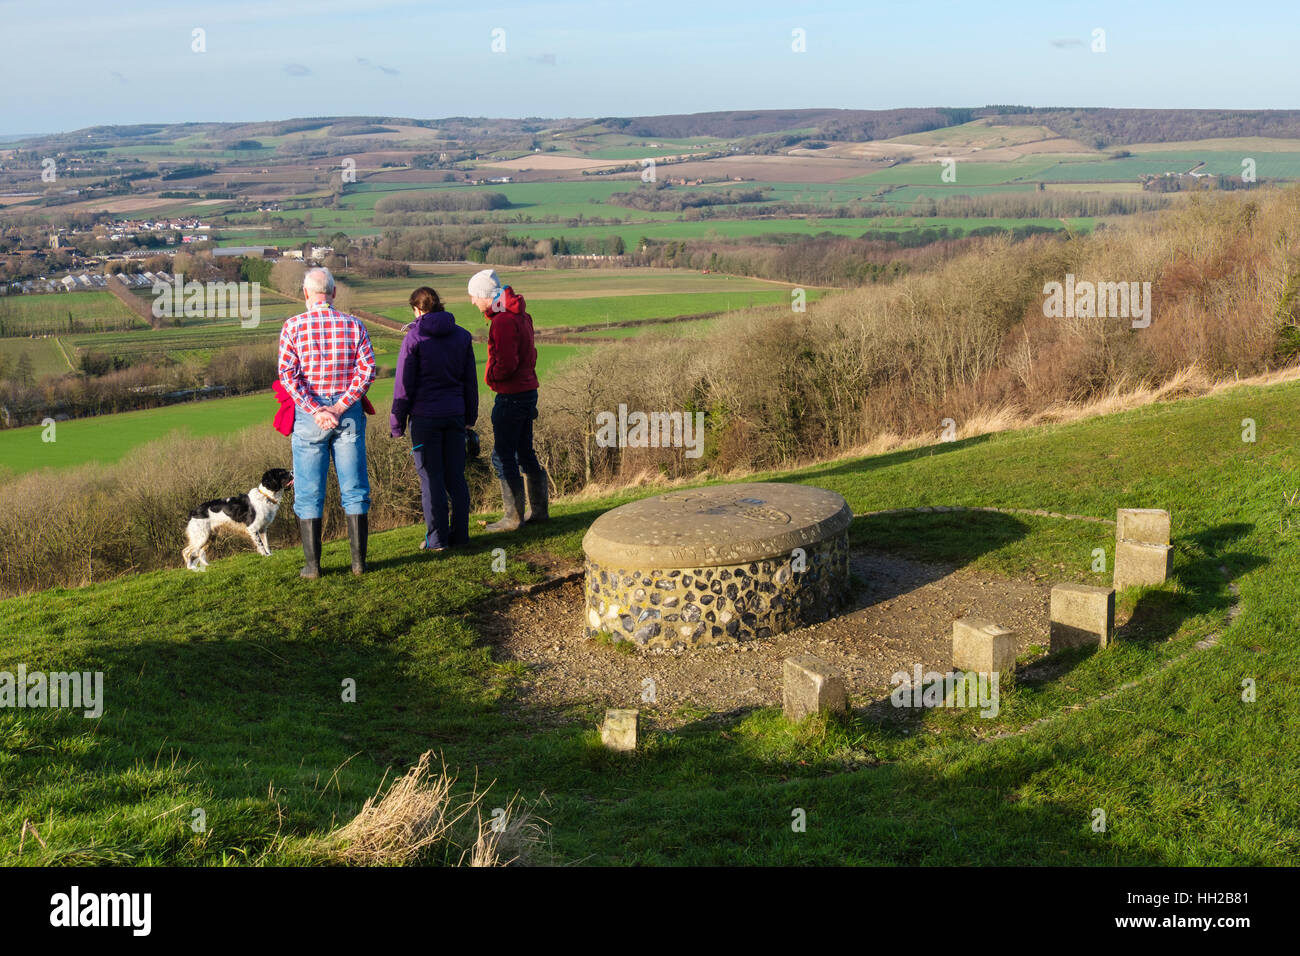 People looking at view by Wye Crown Millennium stone in Wye National Nature Reserve in hills on North Downs Way - Stock Image